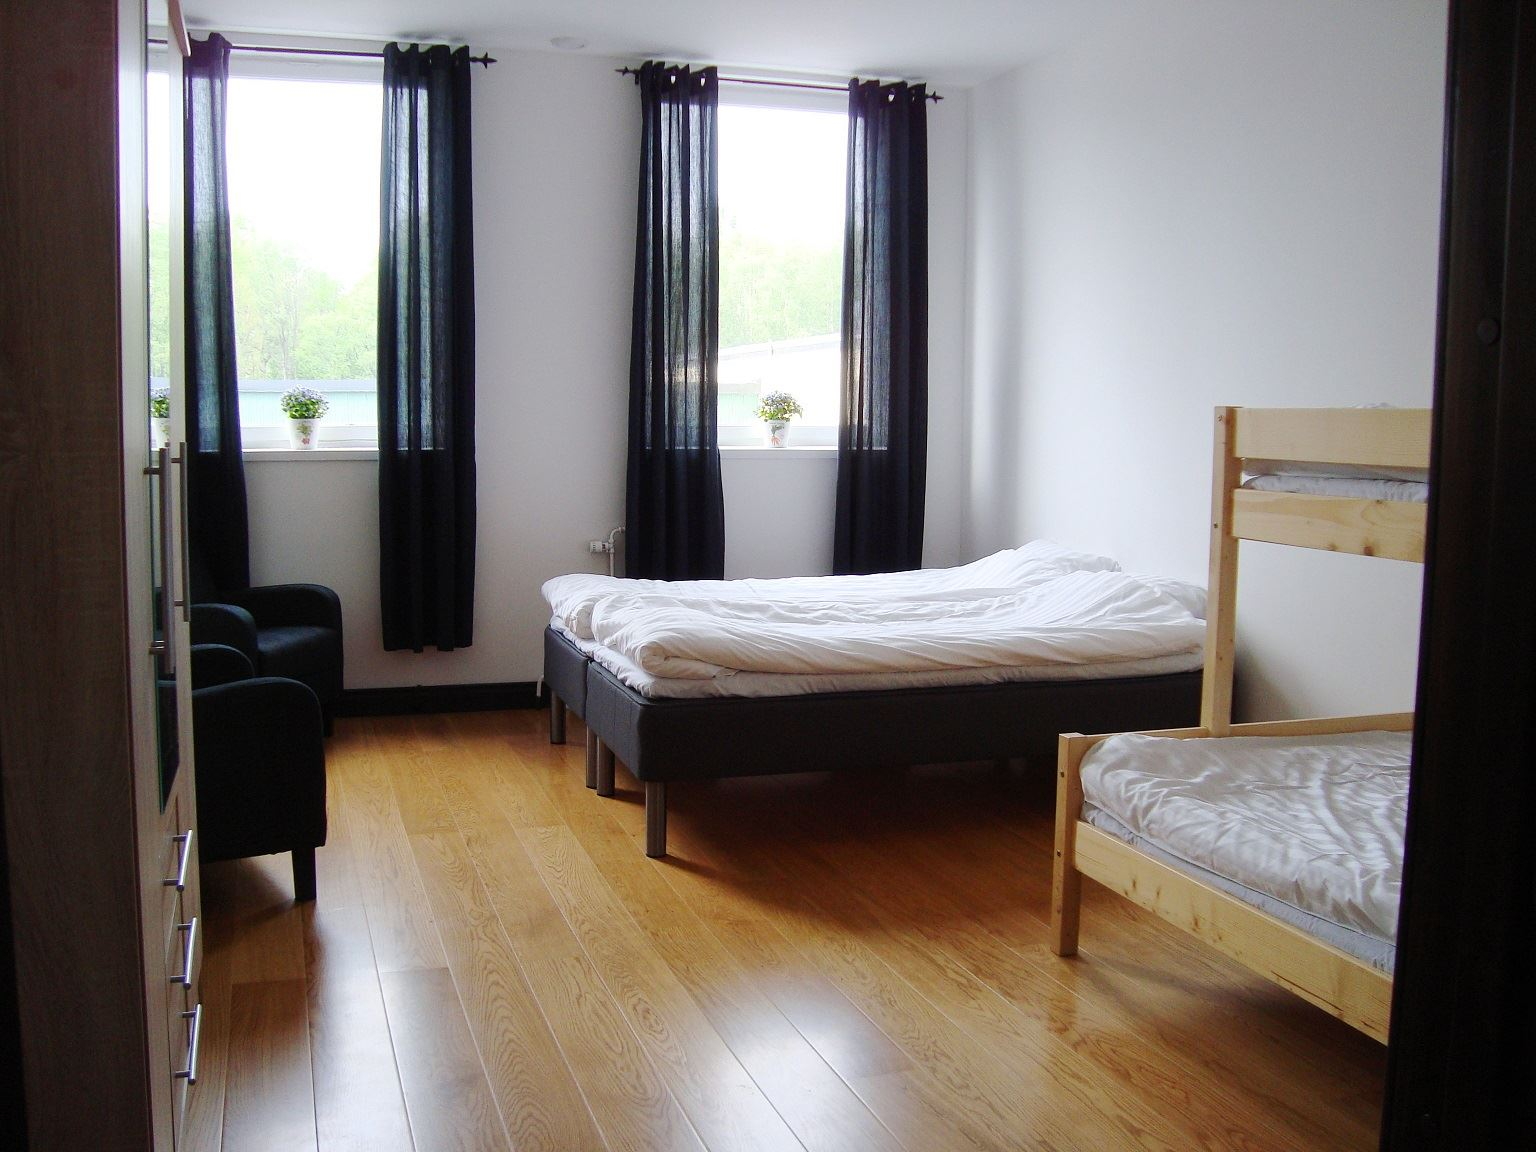 Vimmerby Bed & Breakfast